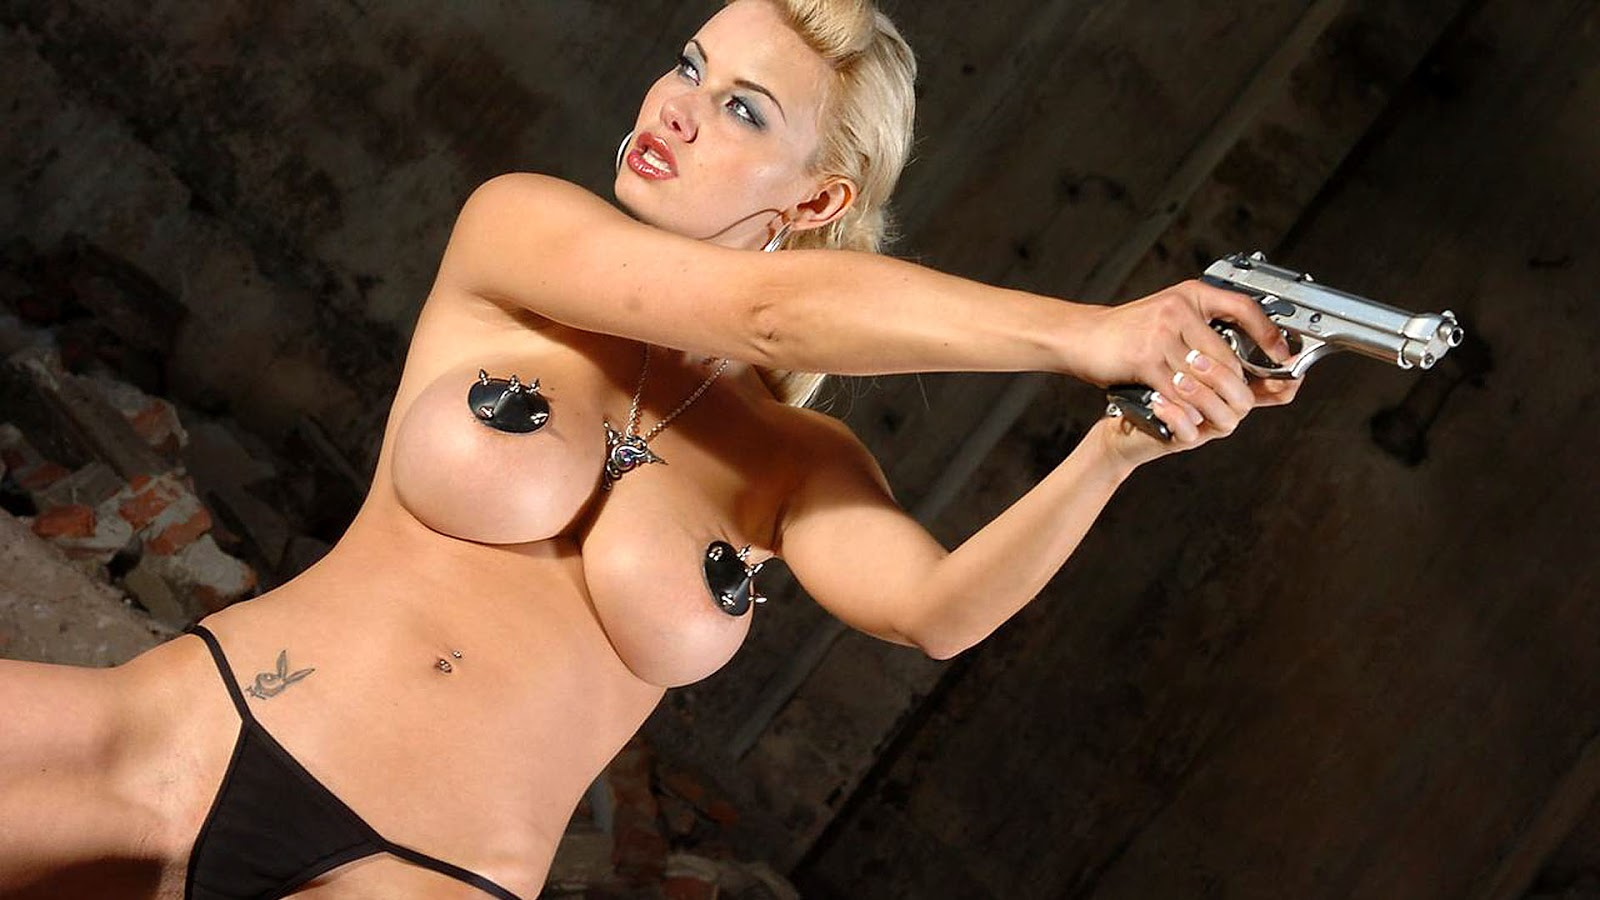 woman-fucking-girls-with-weapons-naked